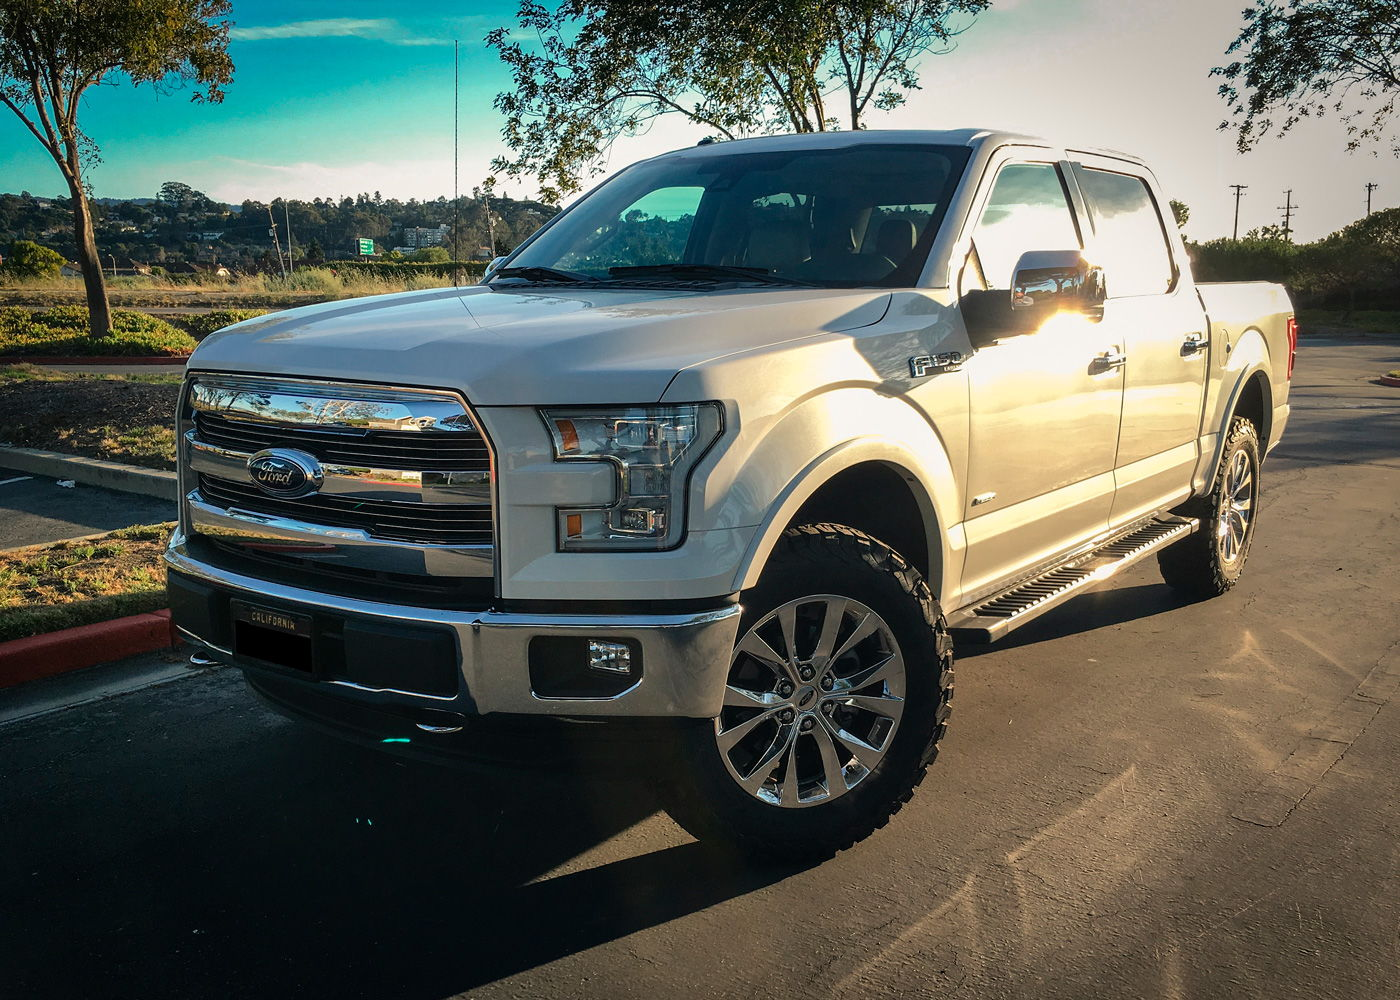 Bf Goodrich K02 >> Let's see your White Platinum Pearl F150! - Page 6 - Ford F150 Forum - Community of Ford Truck Fans